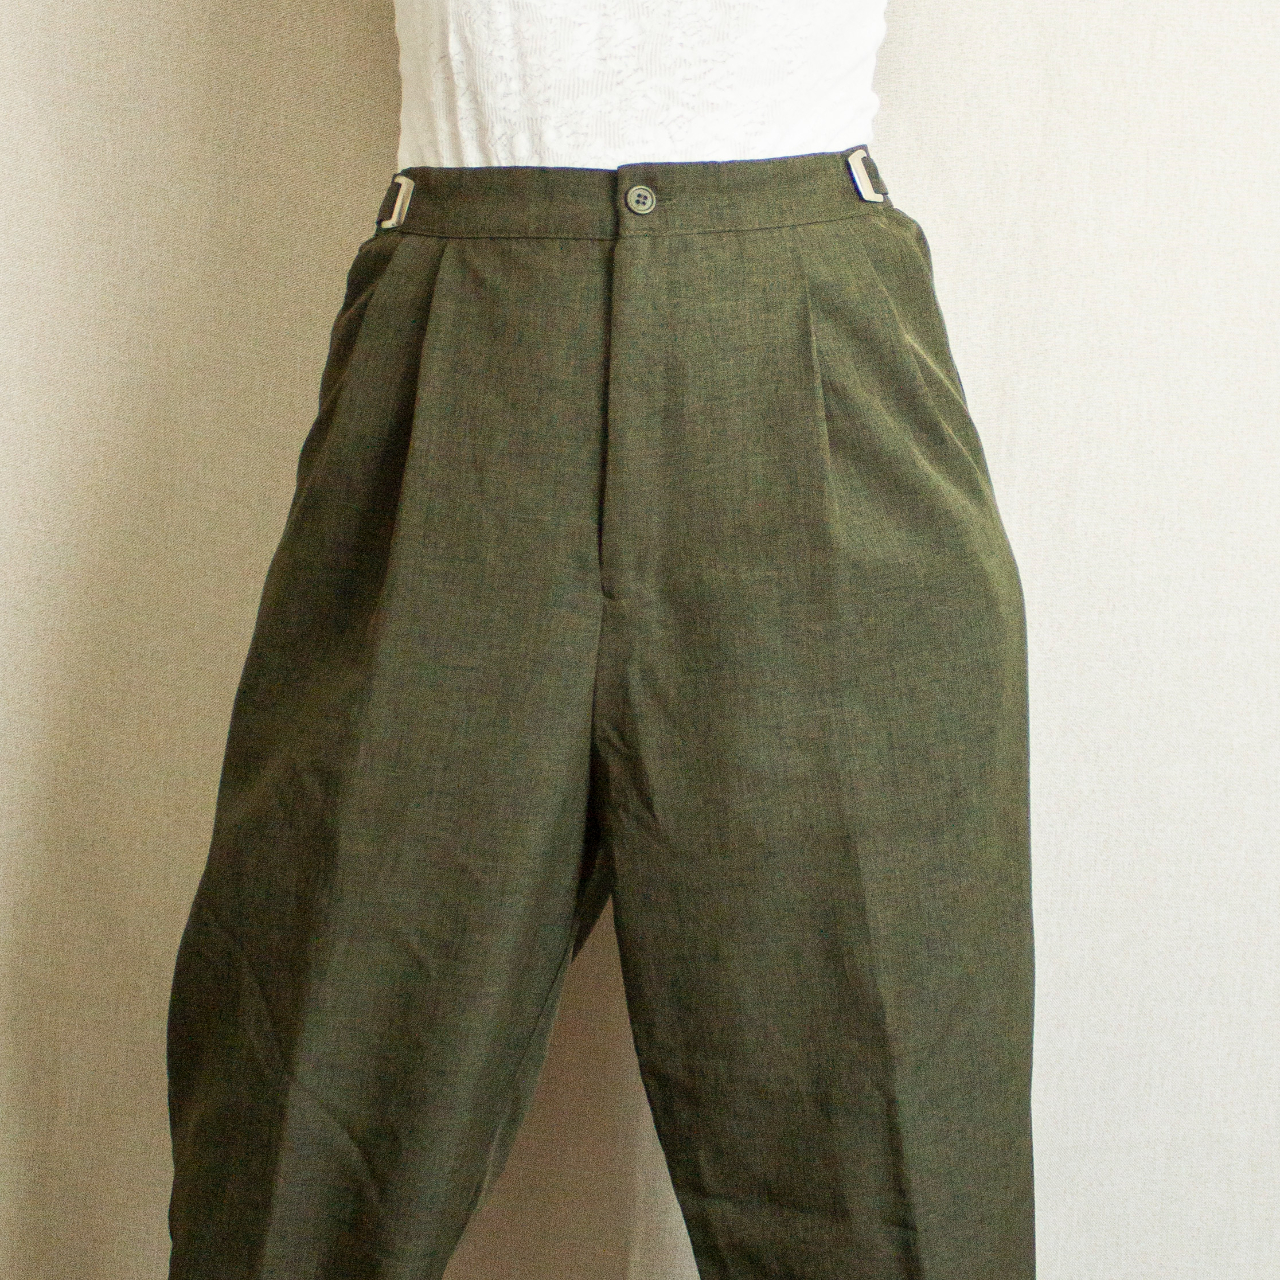 Product Image 1 - Olive green pleated trousers. The